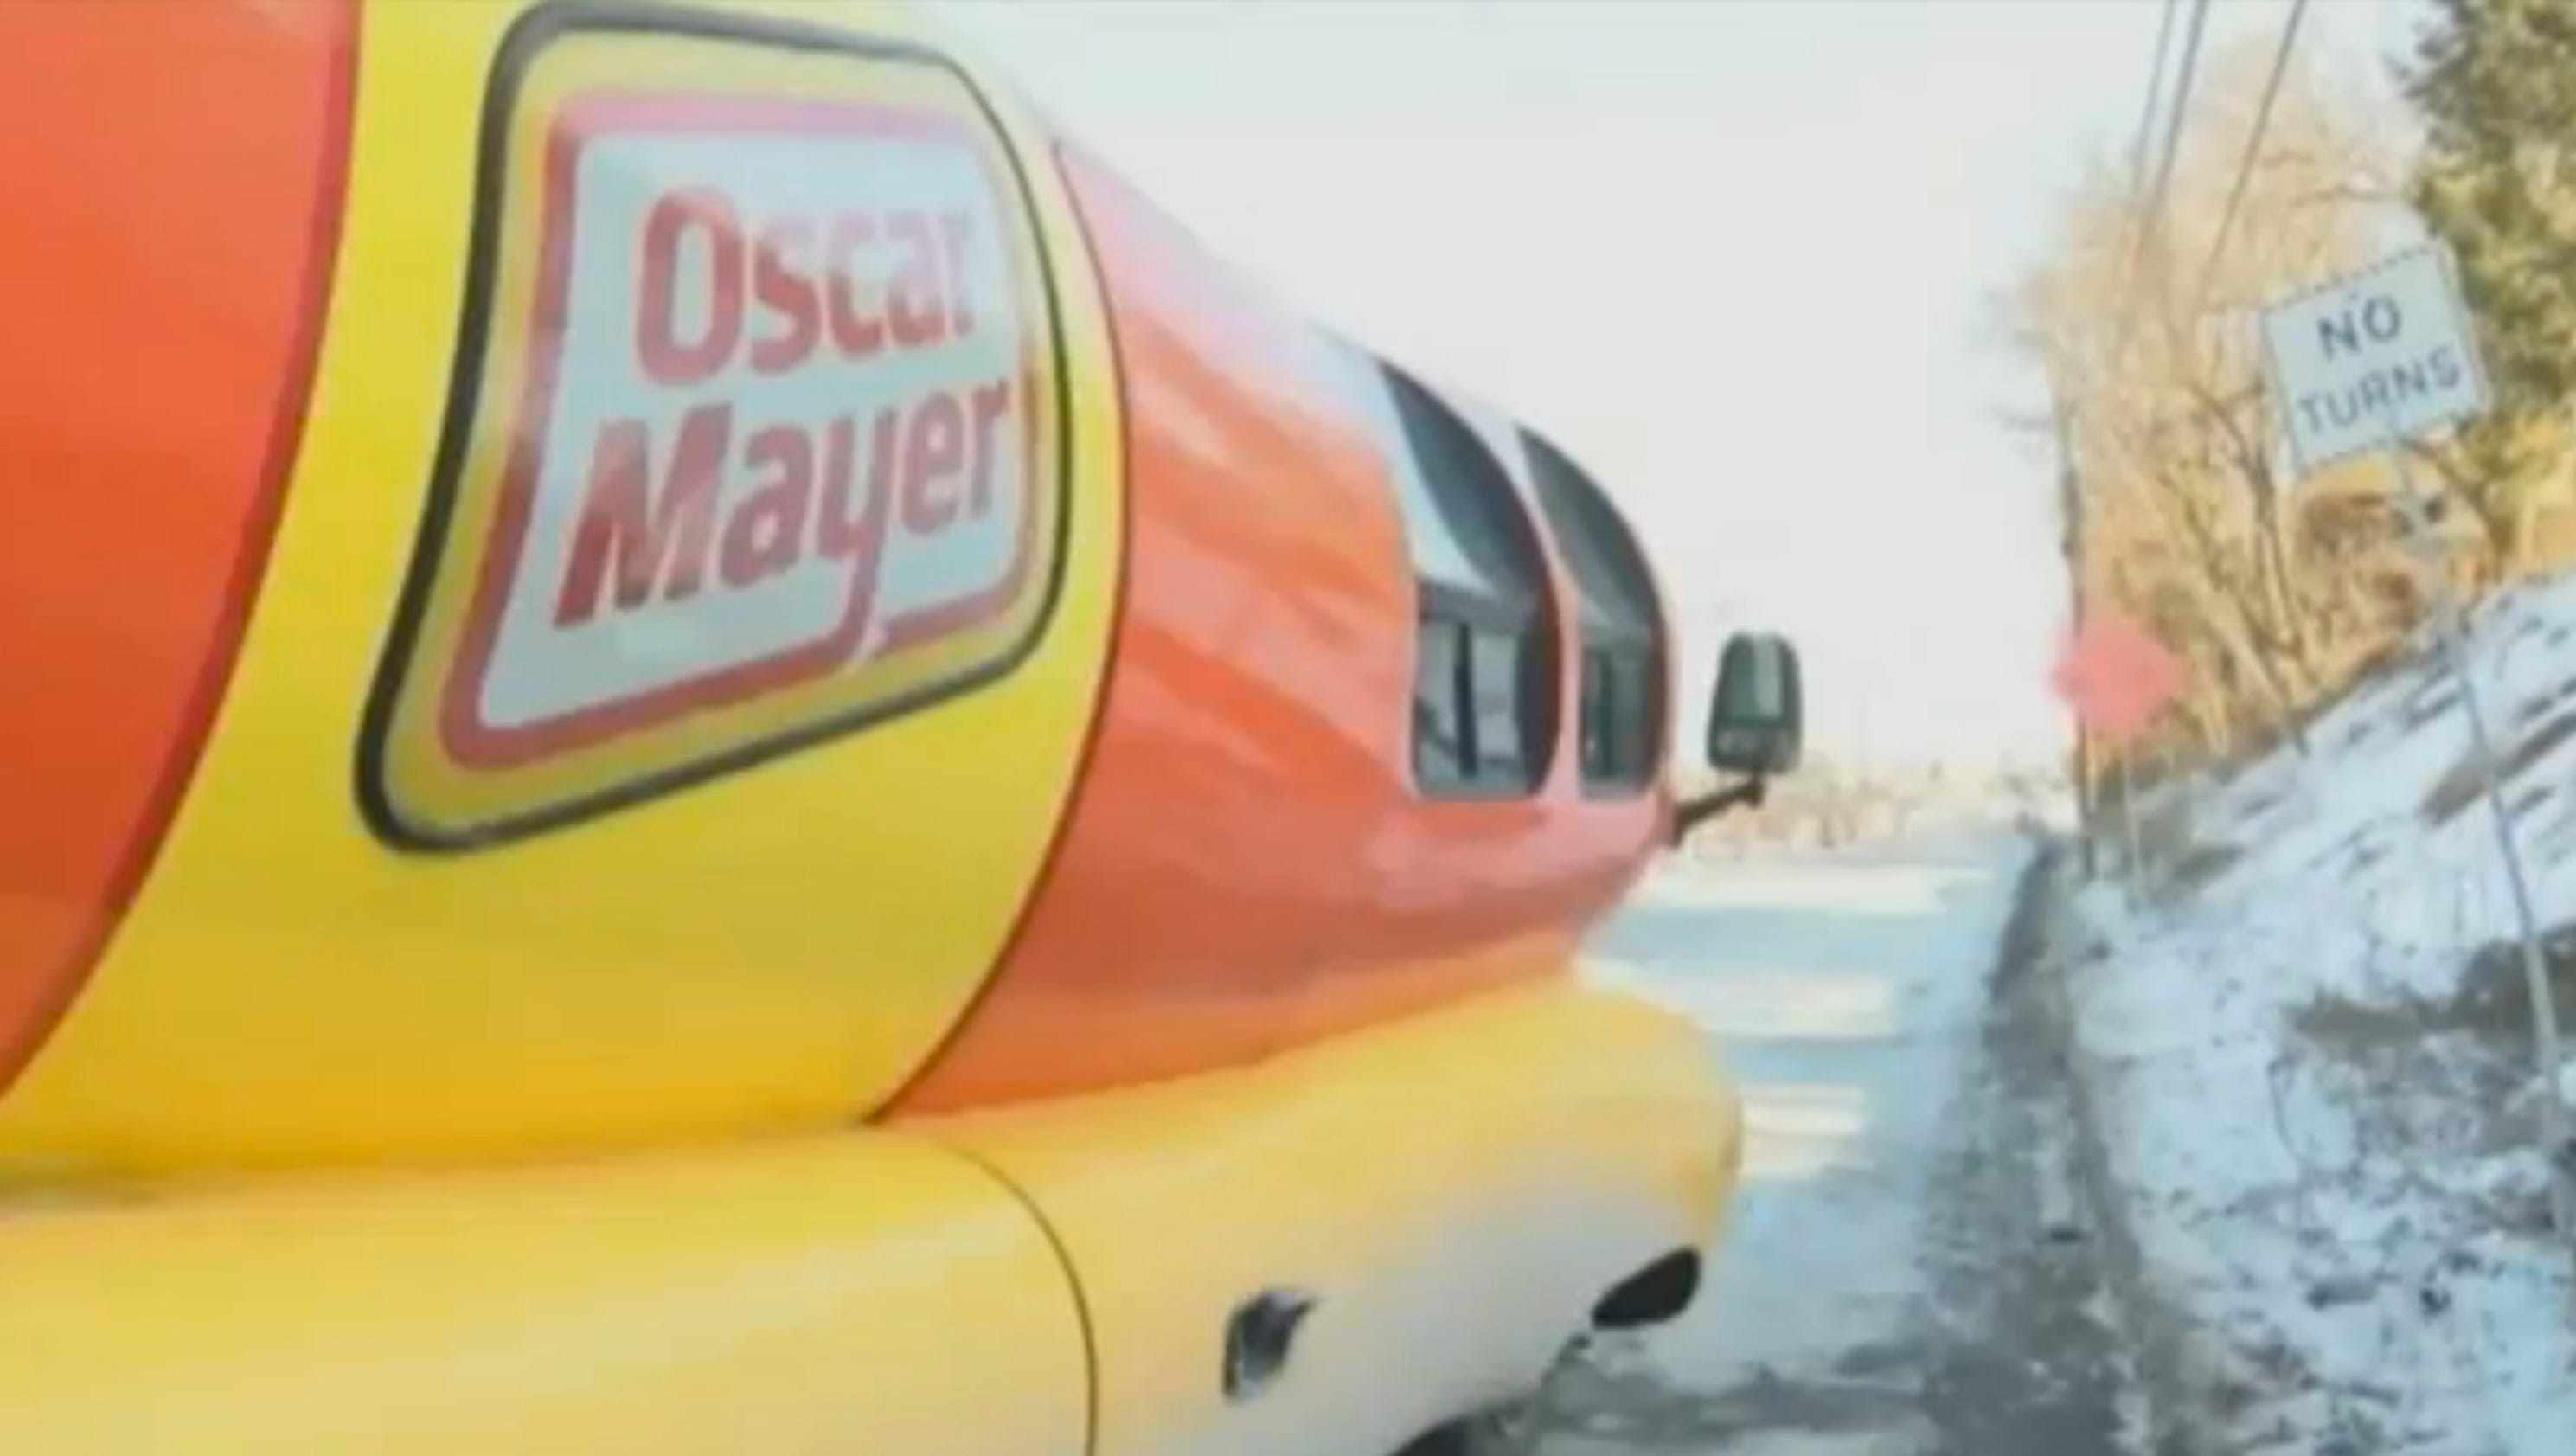 Chi Wienermobile Crash 20150216 Story in addition 23546871 furthermore 7650739 further One Of The Oscar Mayer Wienermobile Cars Crashed Video 92421 furthermore 23546871. on oscar mayer wienermobile slid off the road